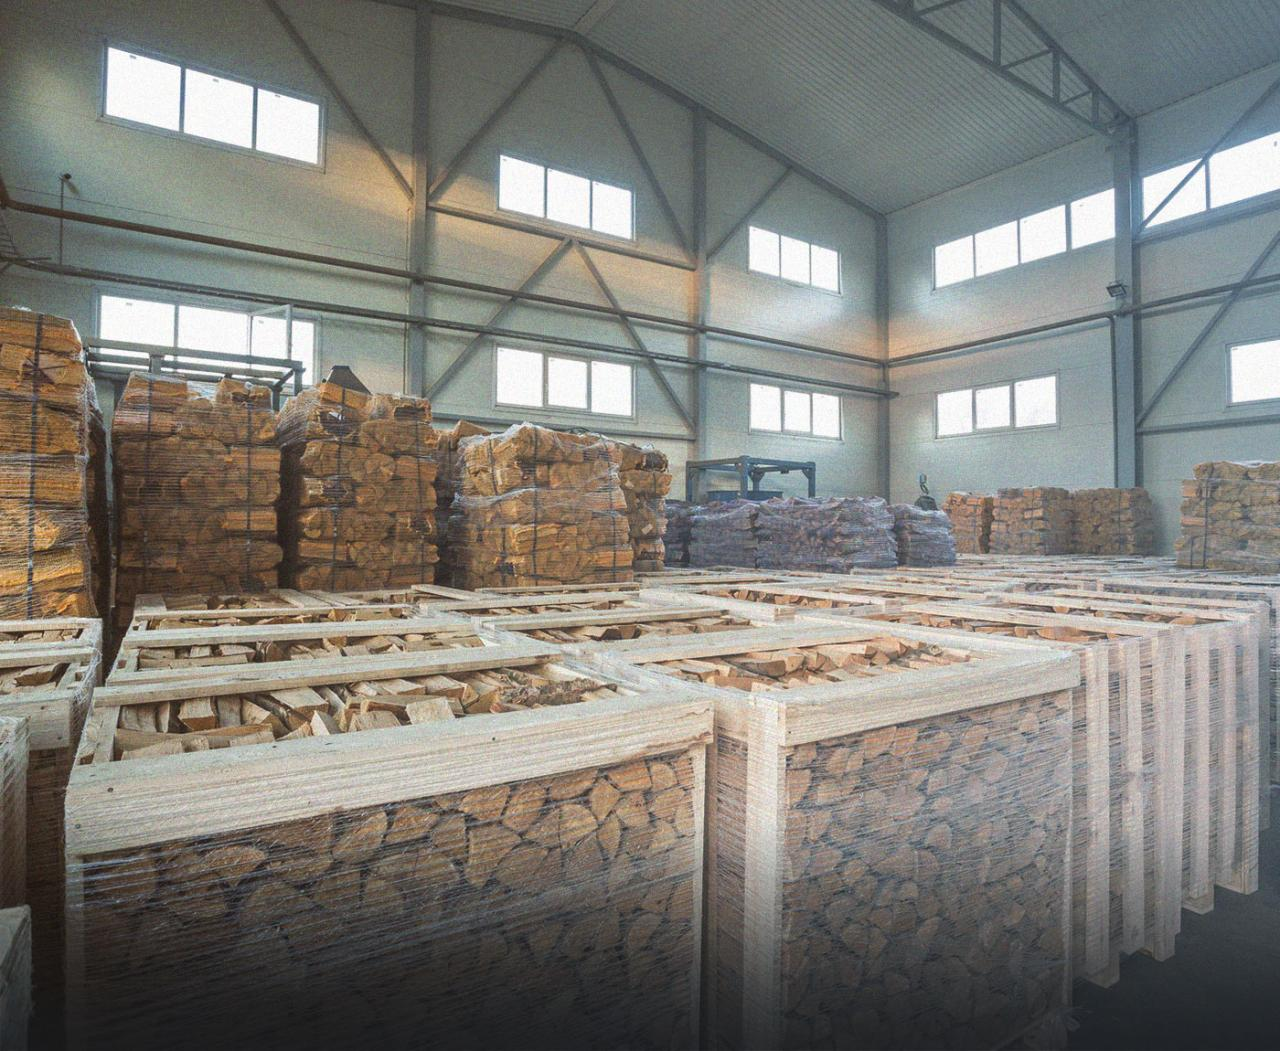 Firewood production and distribution